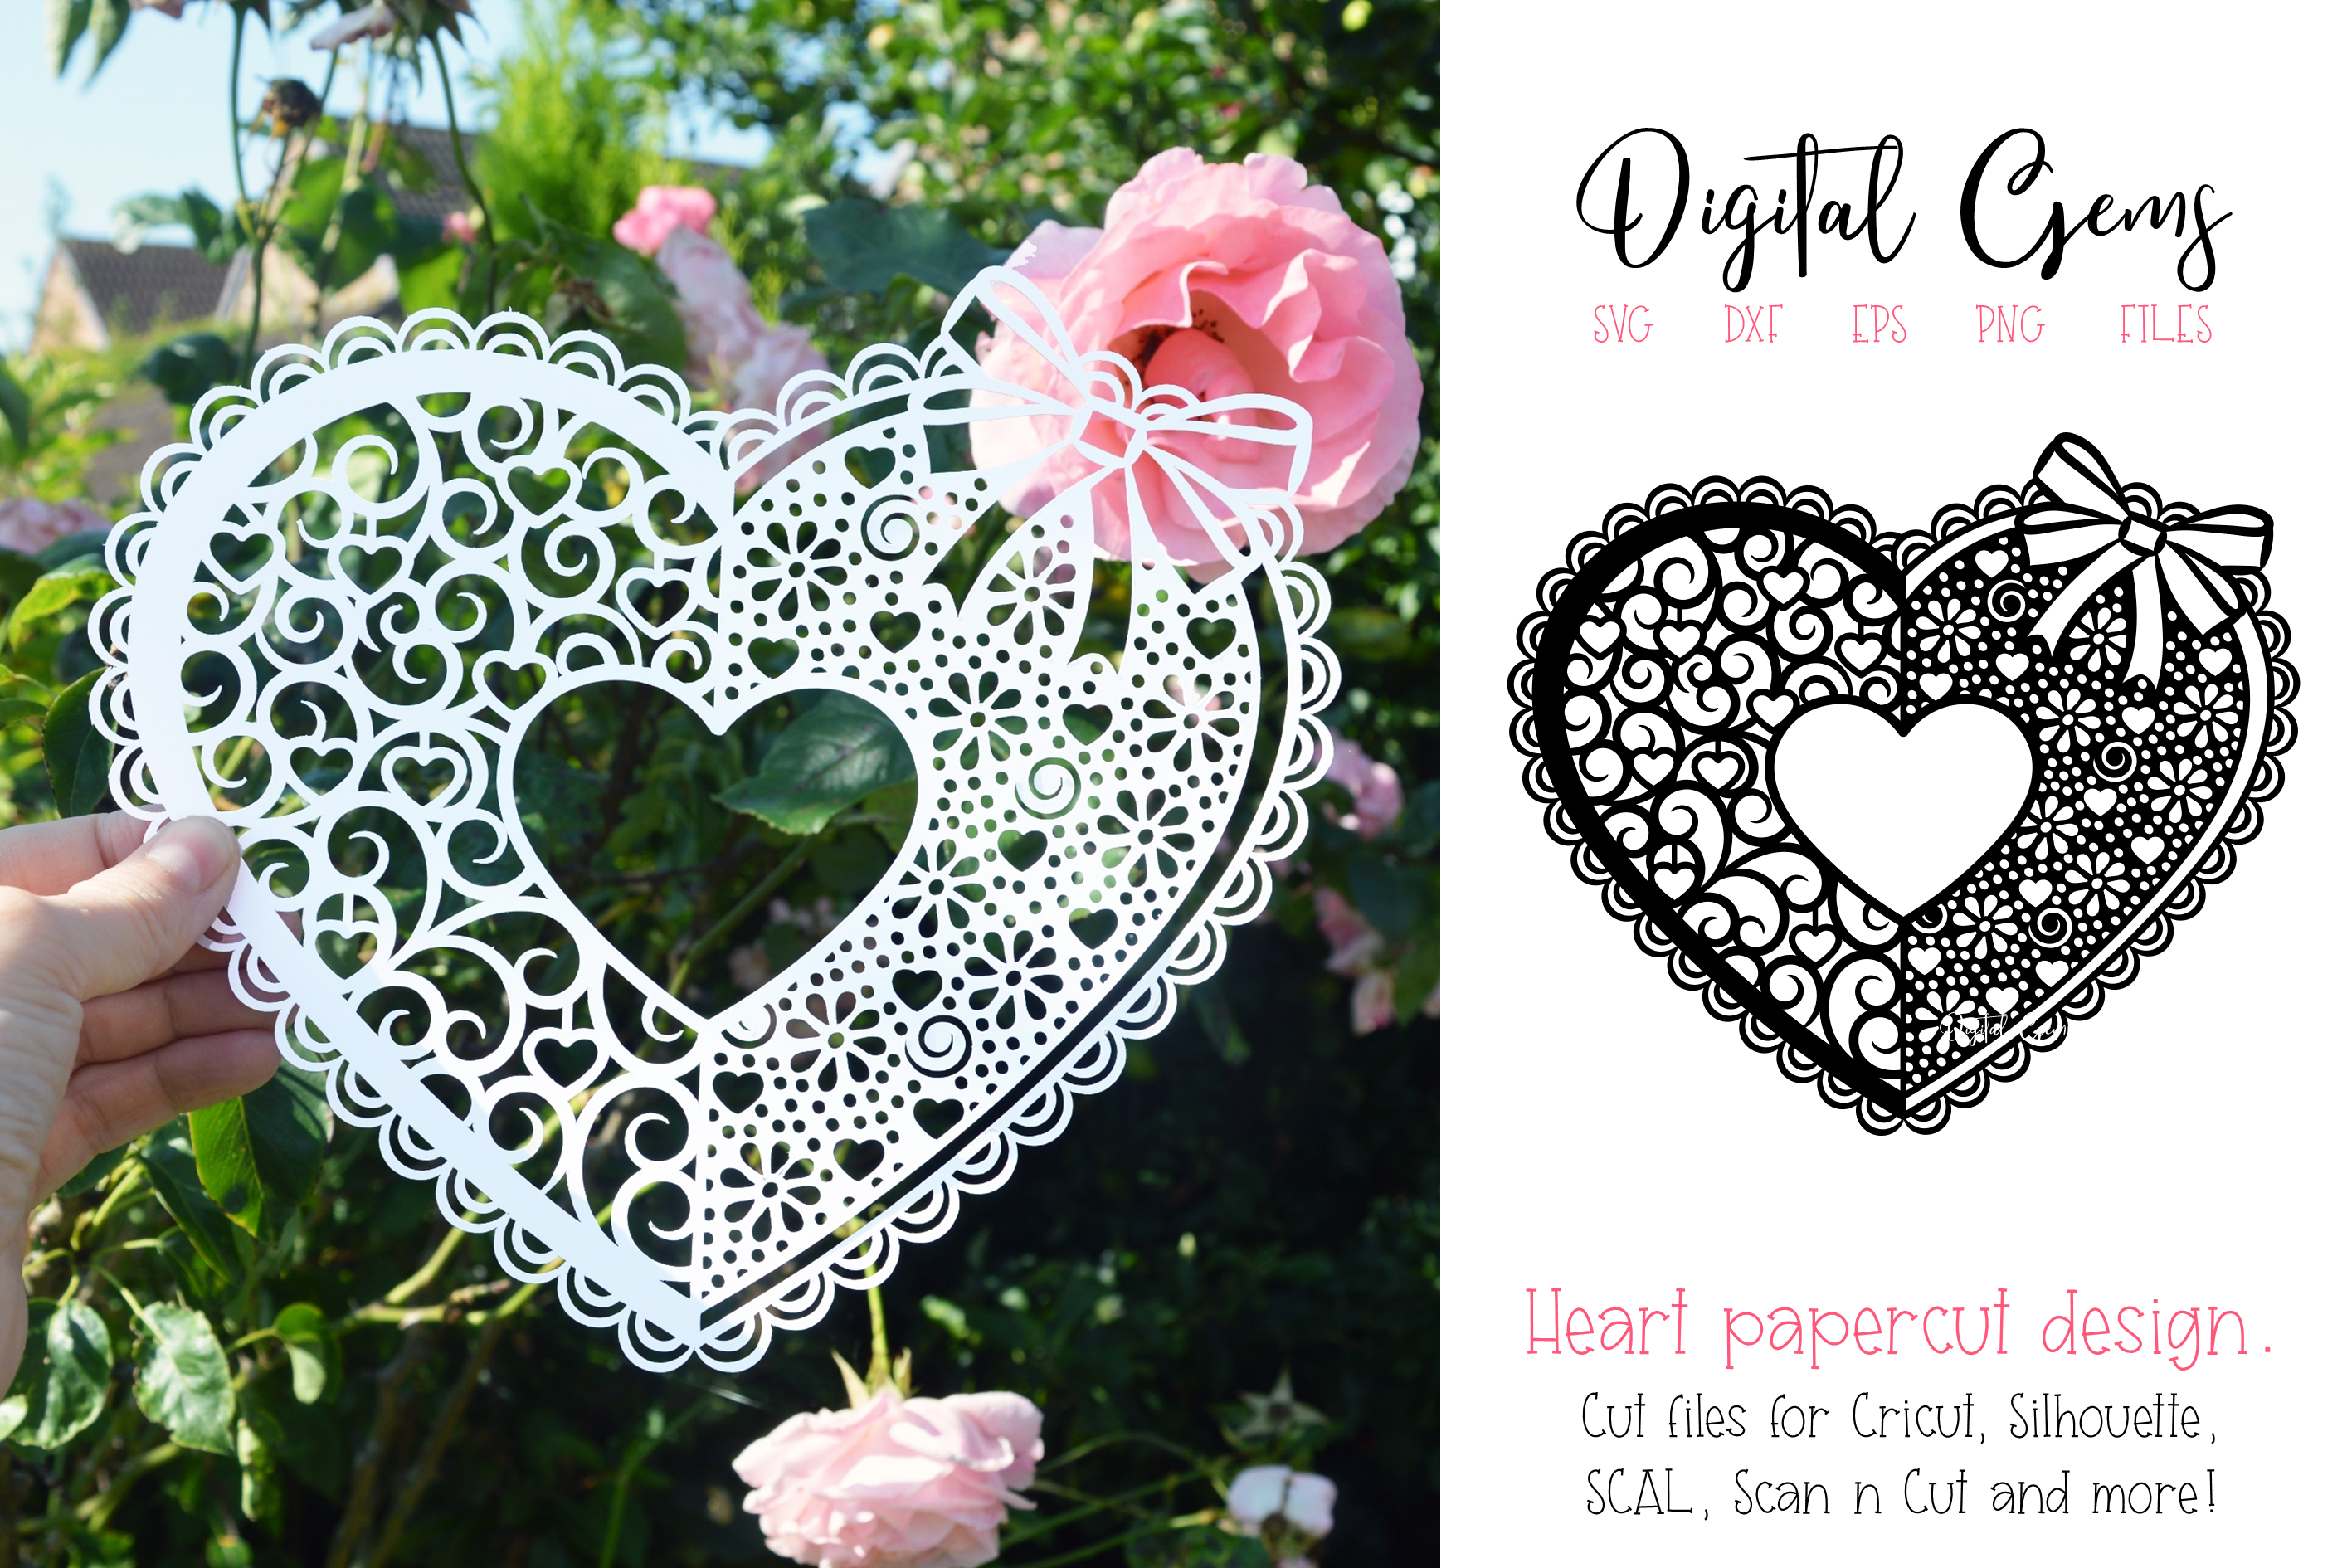 Heart Paper Cut Design Graphic By Digital Gems Creative Fabrica